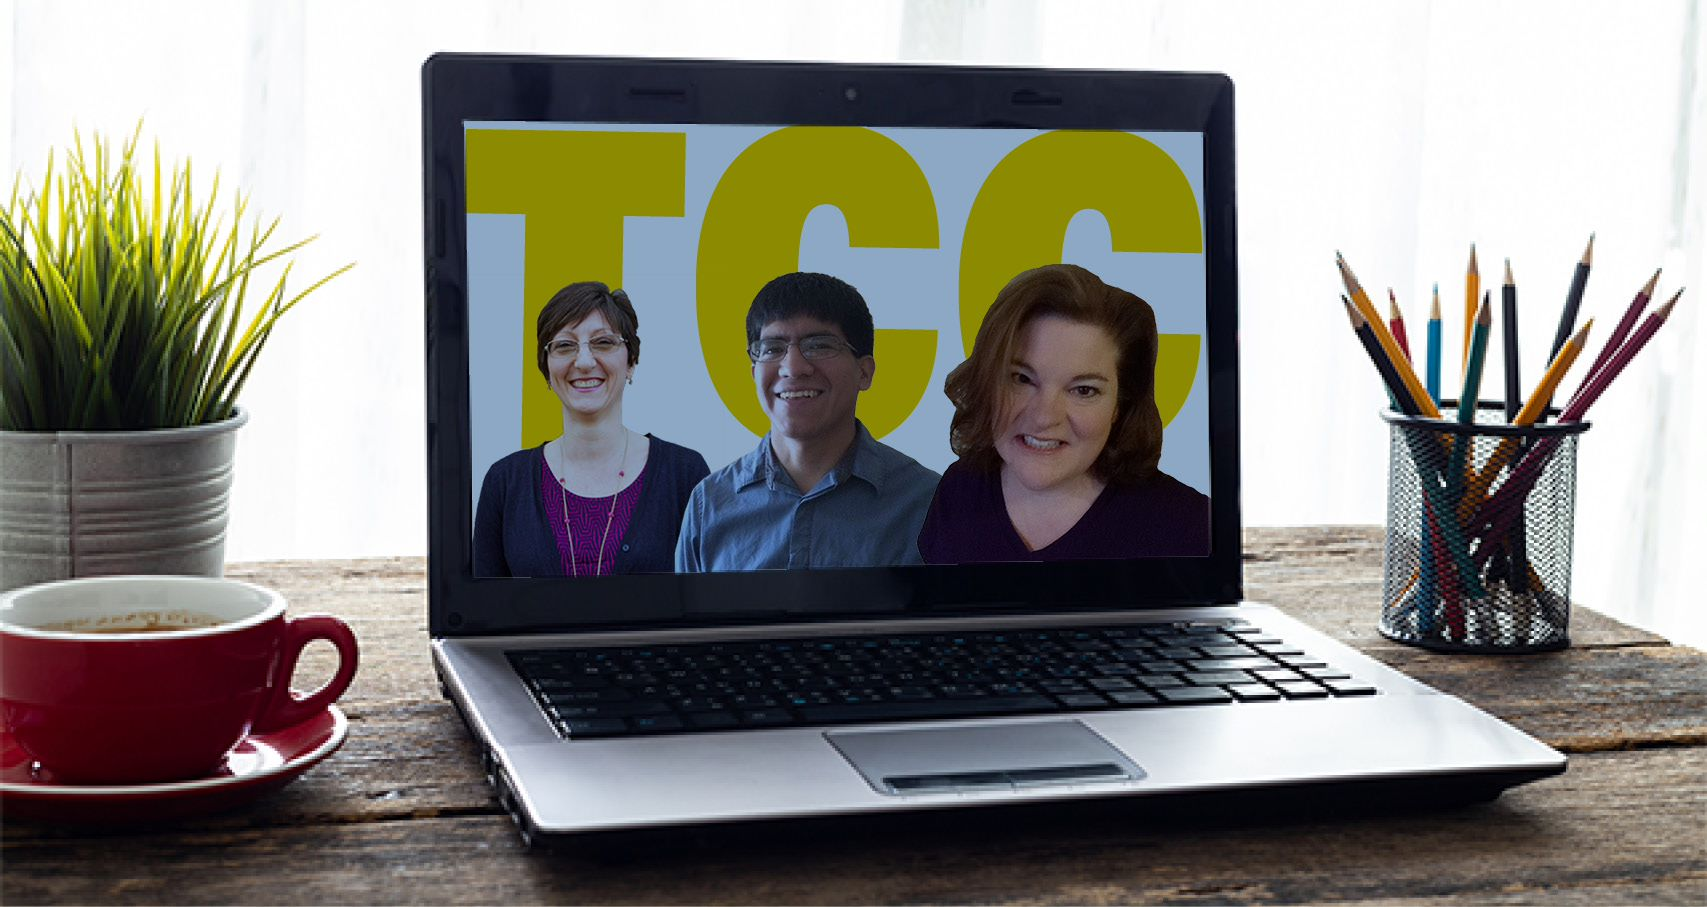 open laptop with a photo of 3 smiling people onscreen